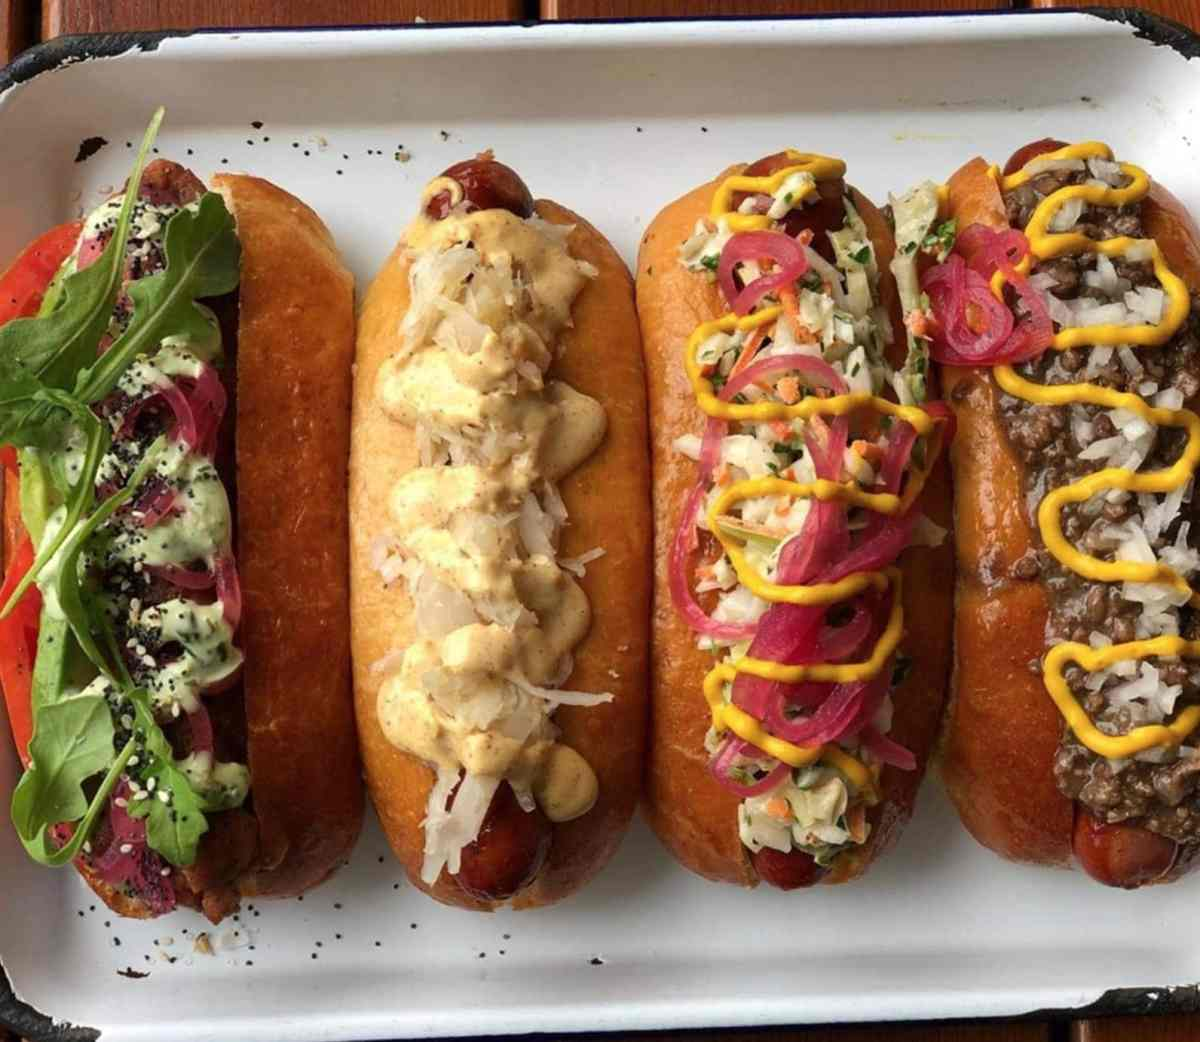 No two Birmingham hot dogs are alike. 9 local spots that have a hot dog for everyone.